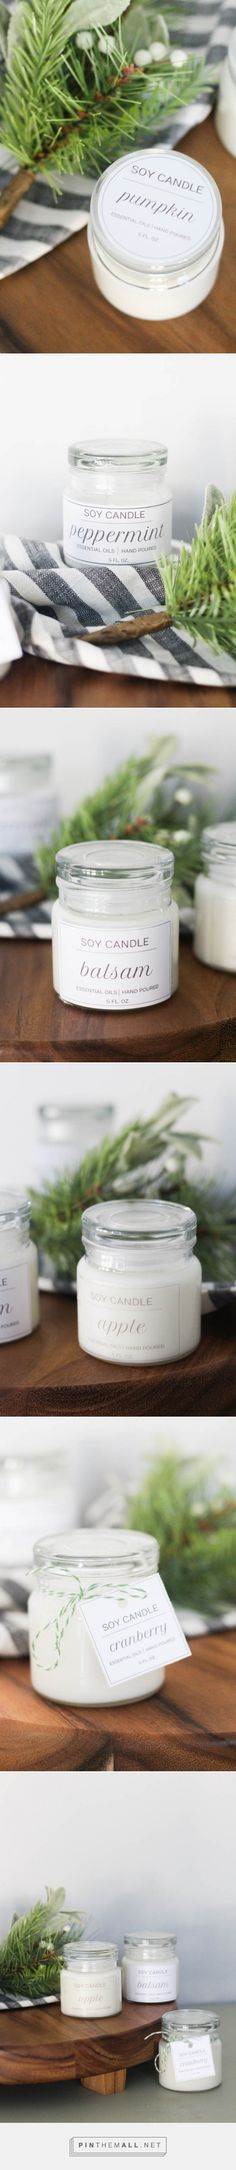 Candle labels you can make at home